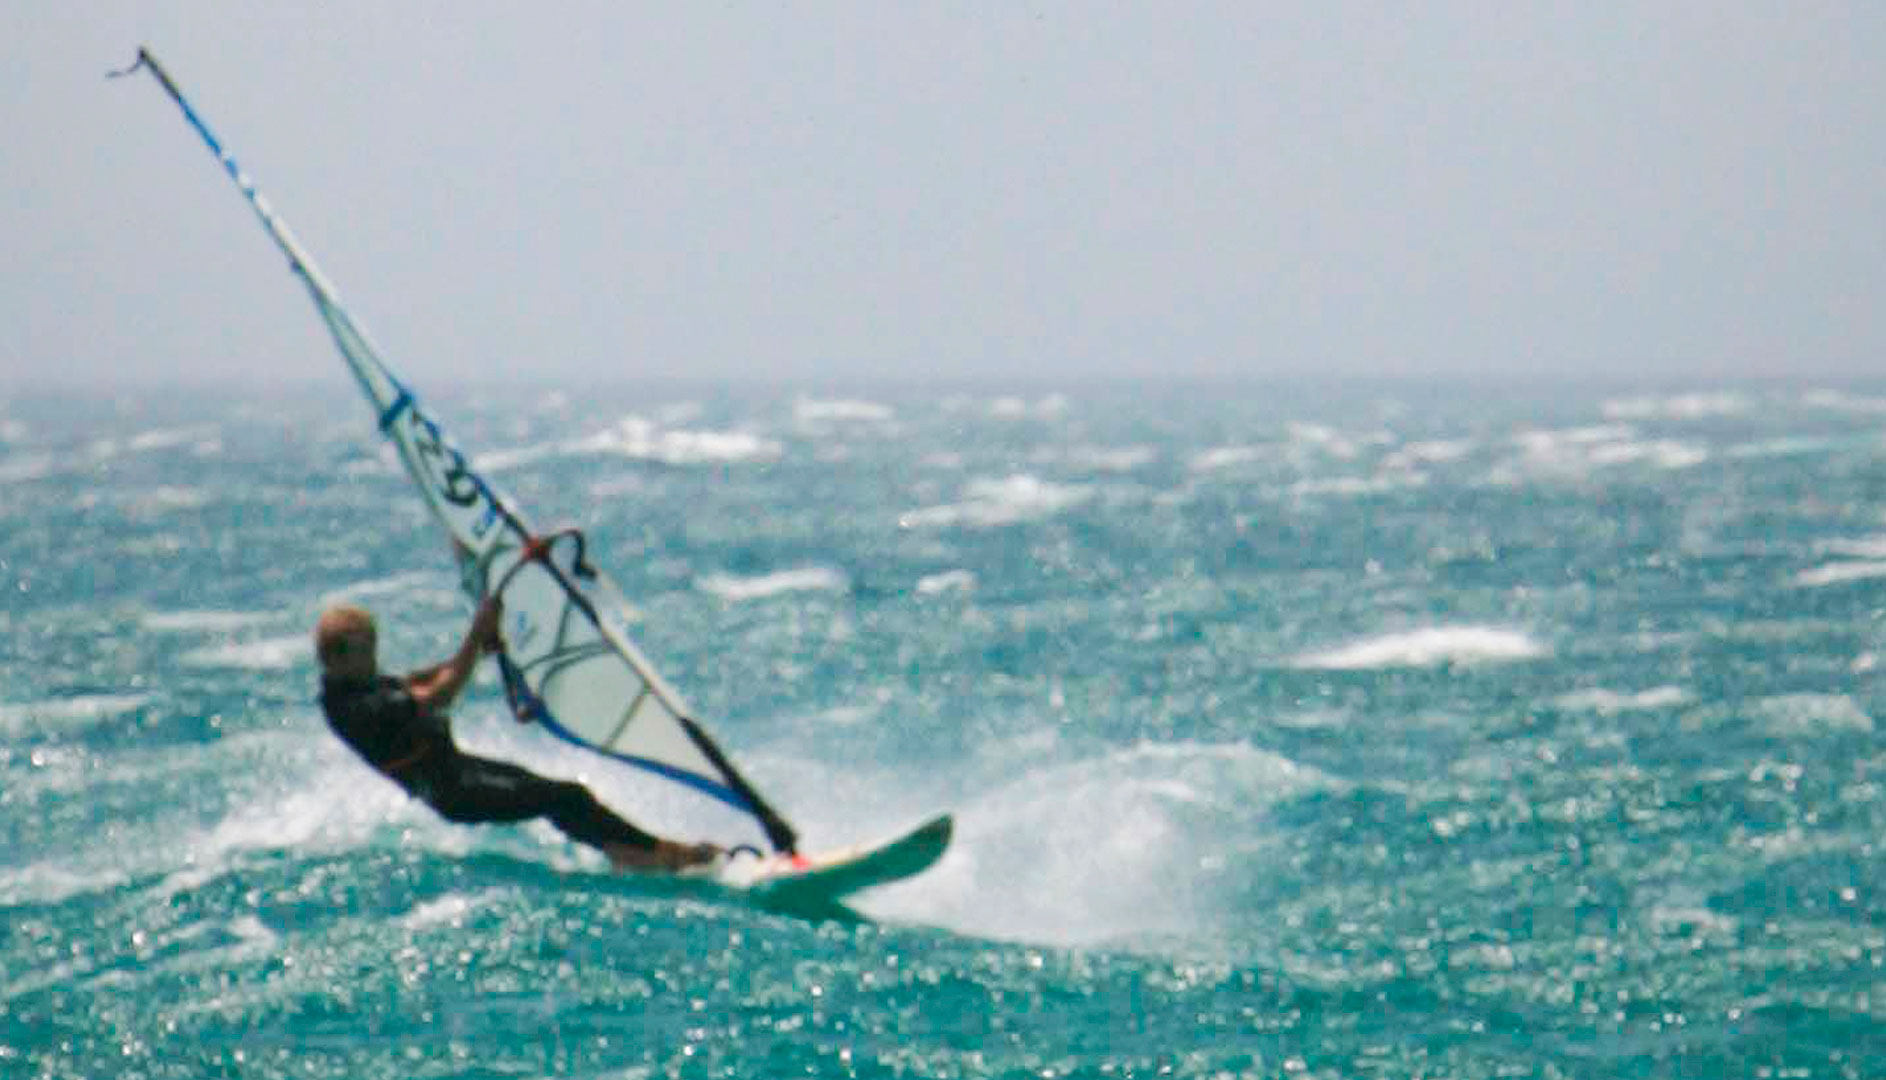 Two people kitesurfing and windsurfing in Tarifa.